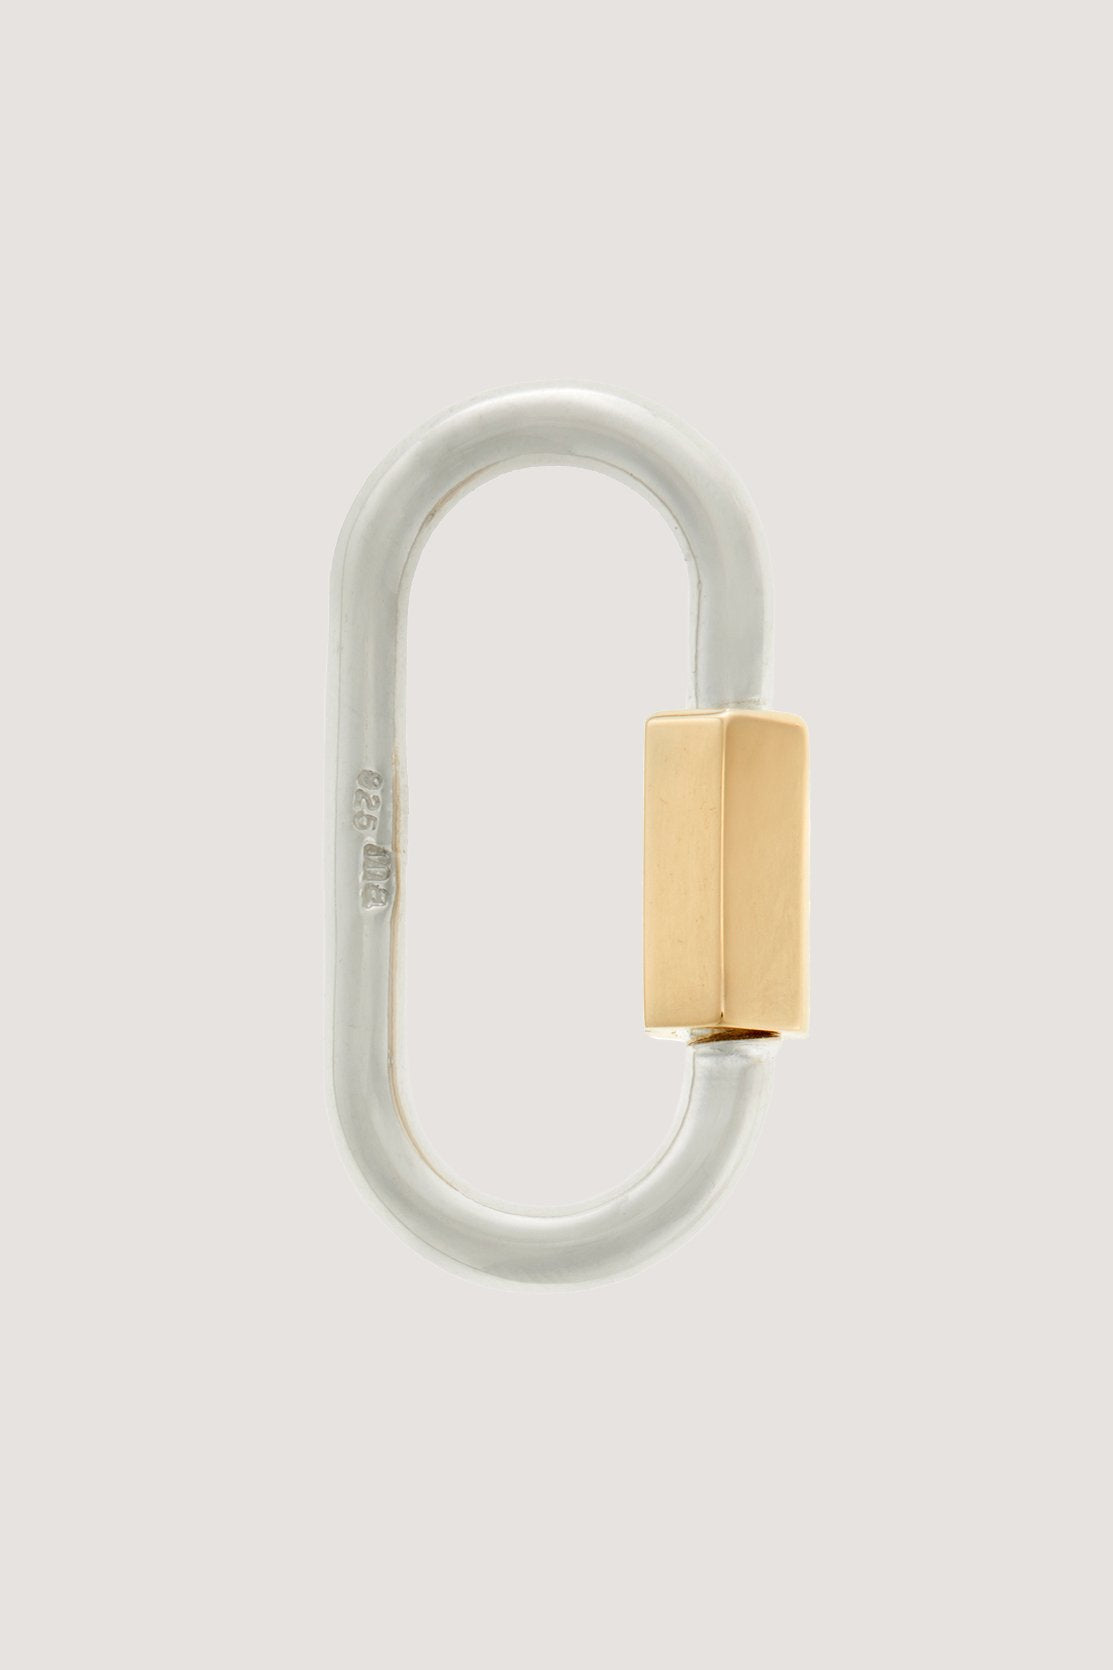 Marla Aaron - Regular lock, Silver & Gold